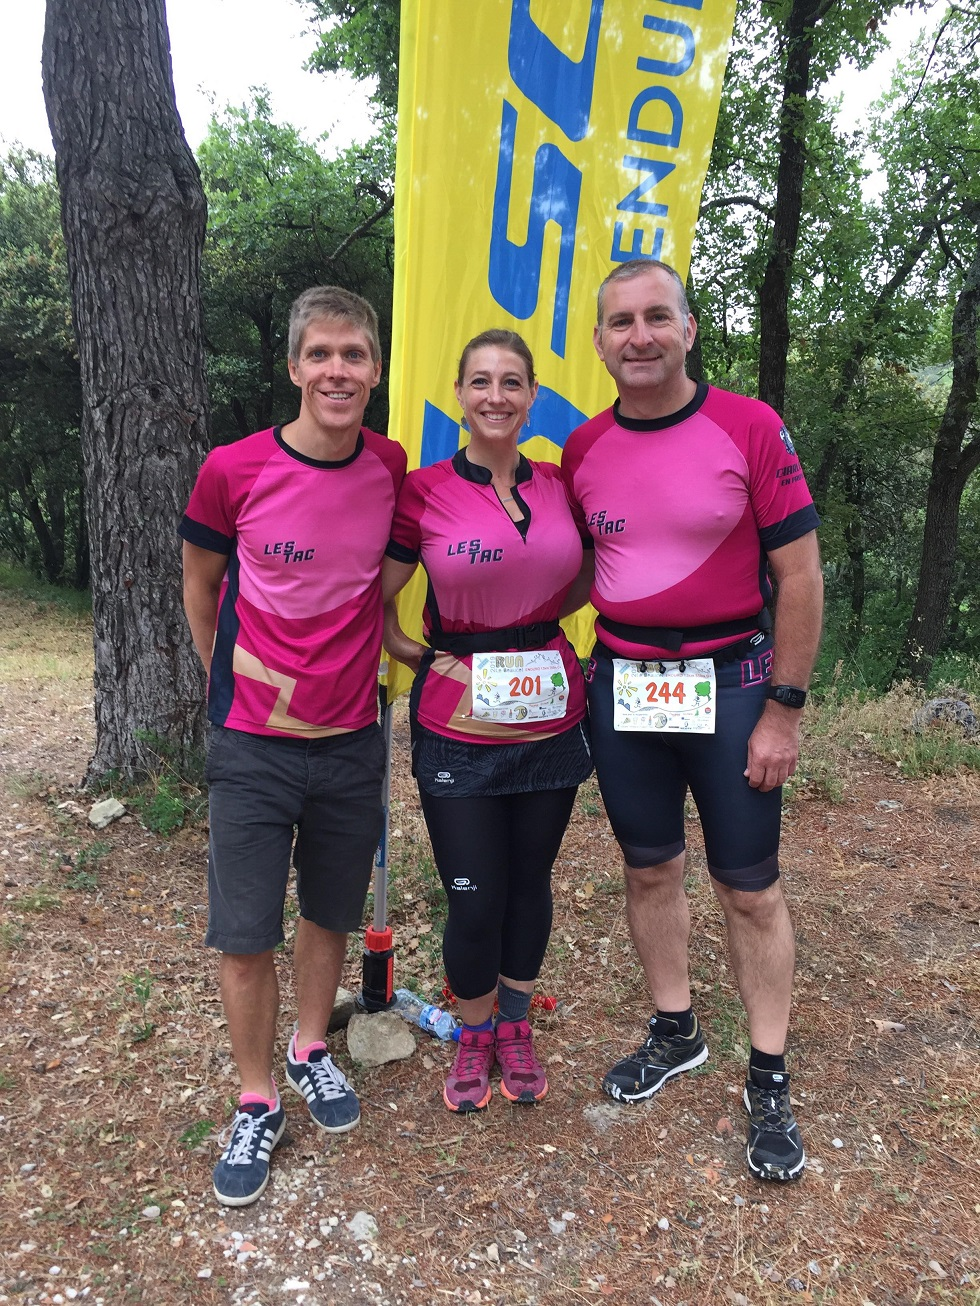 4-Deux coureurs, un supporter